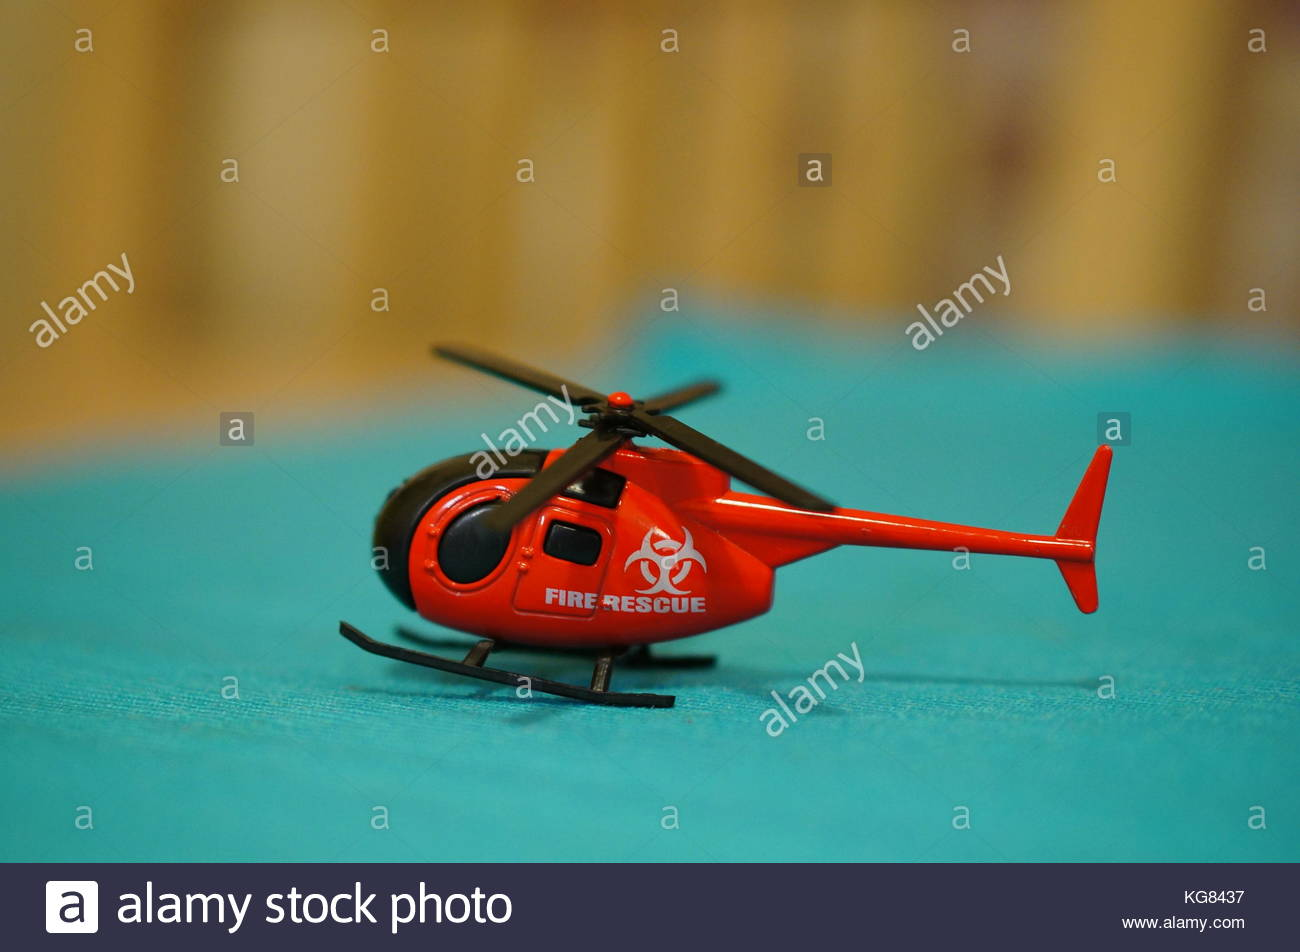 Red Fire Rescue toy helicopter on a blue surface in soft focus - Stock Image